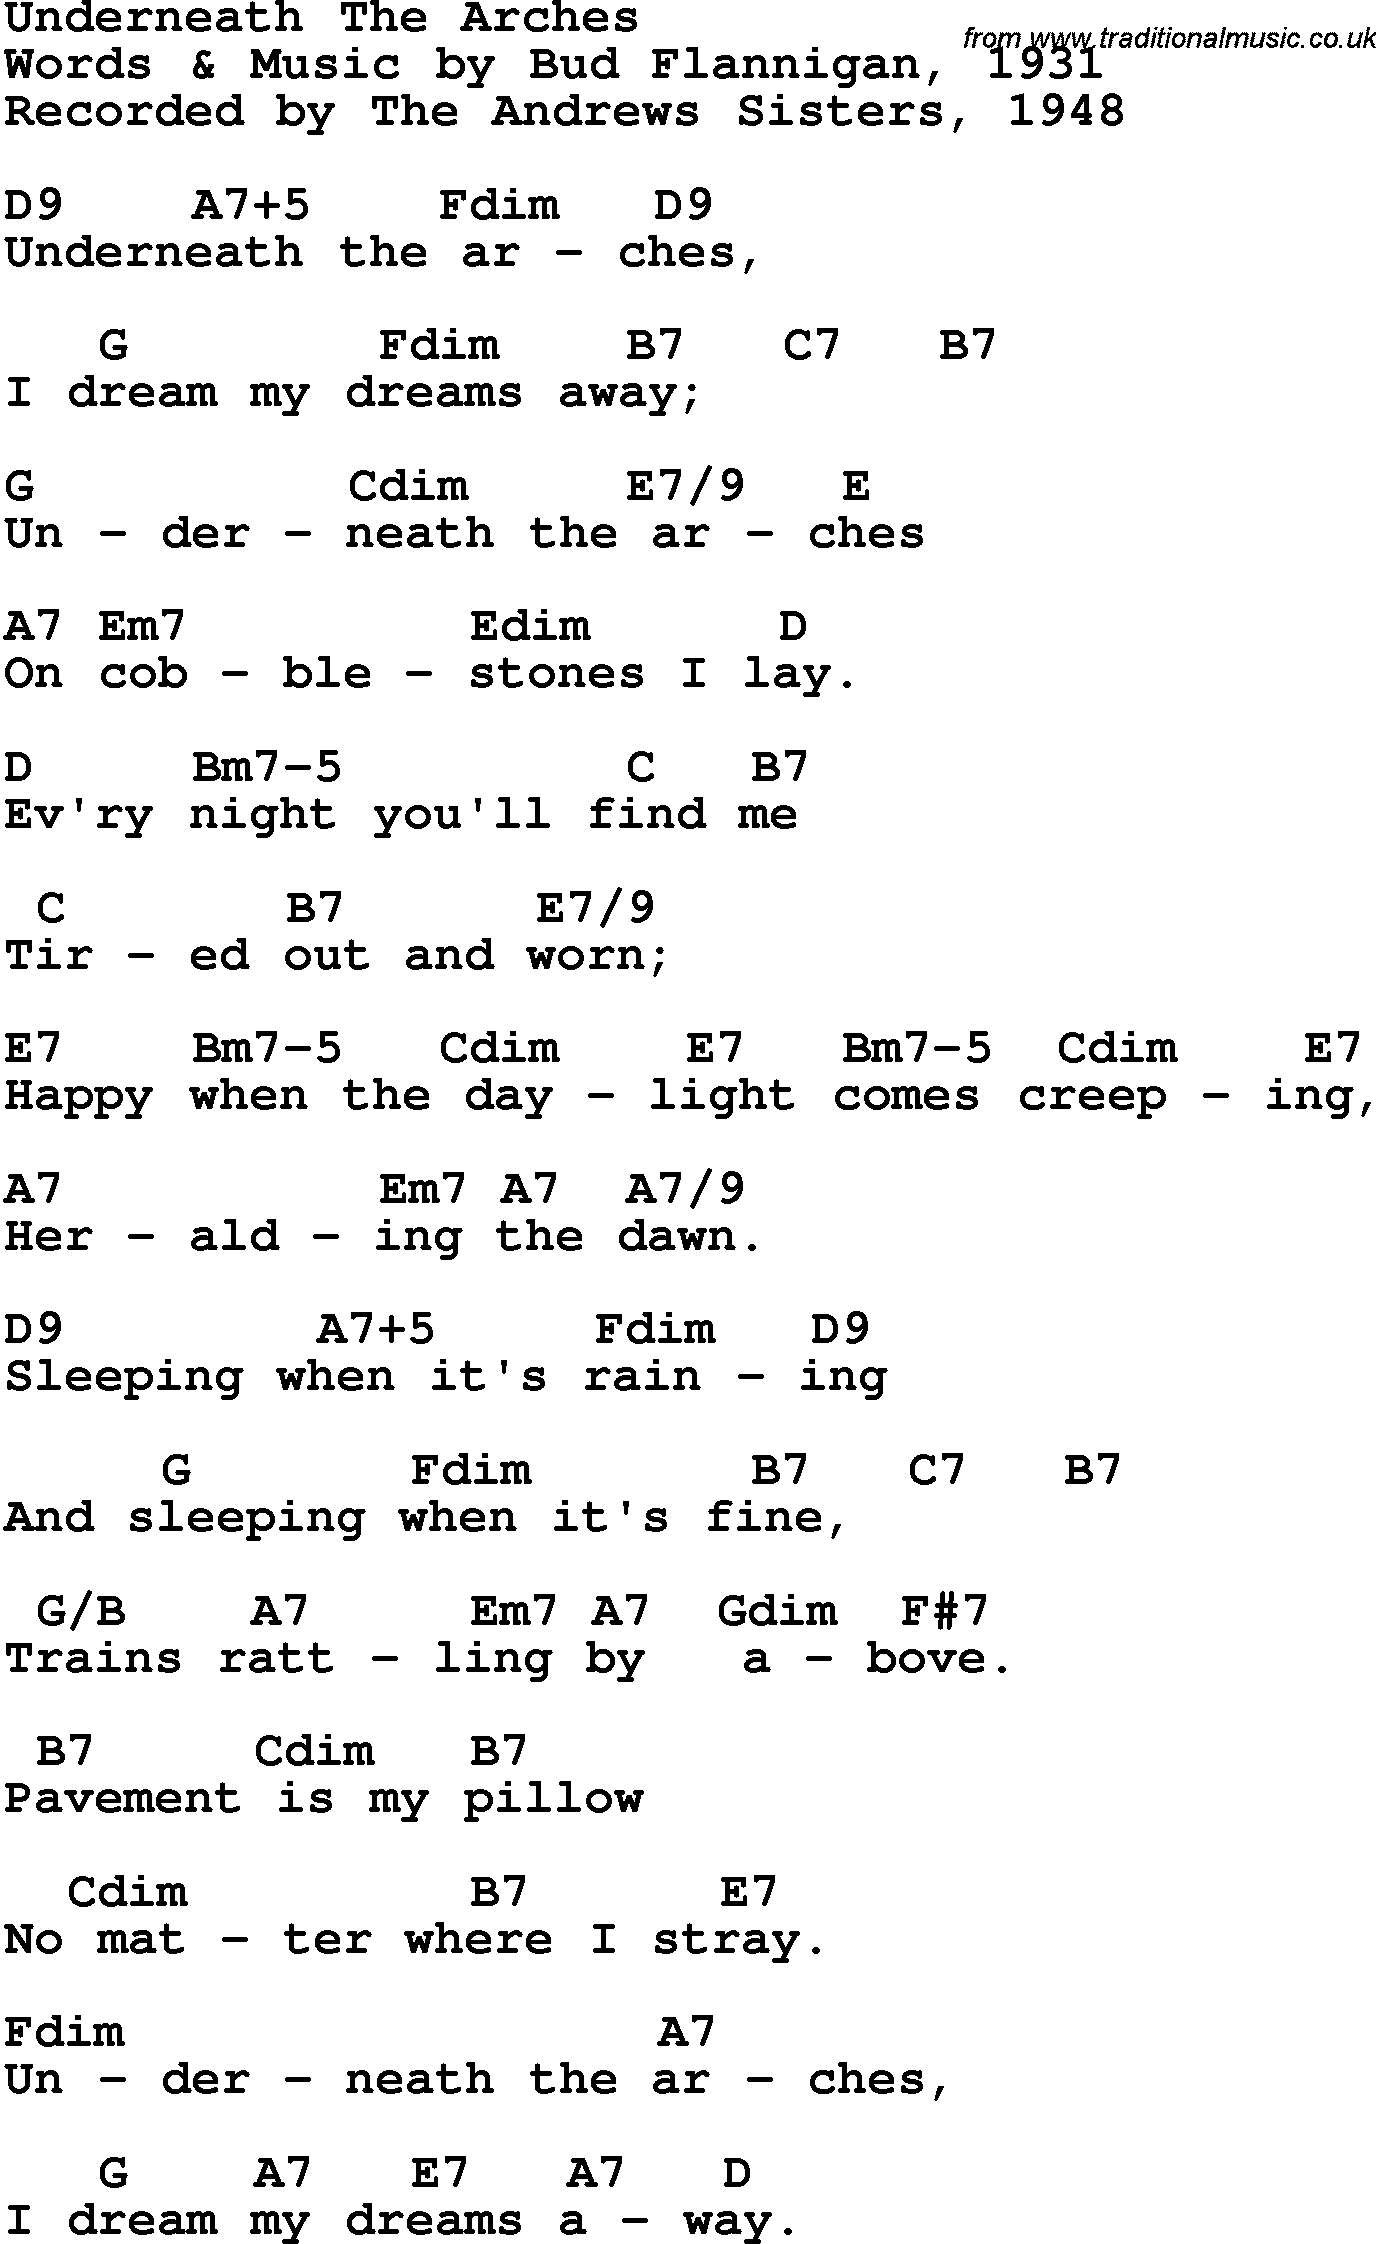 Song Lyrics With Guitar Chords For Underneath The Arches The